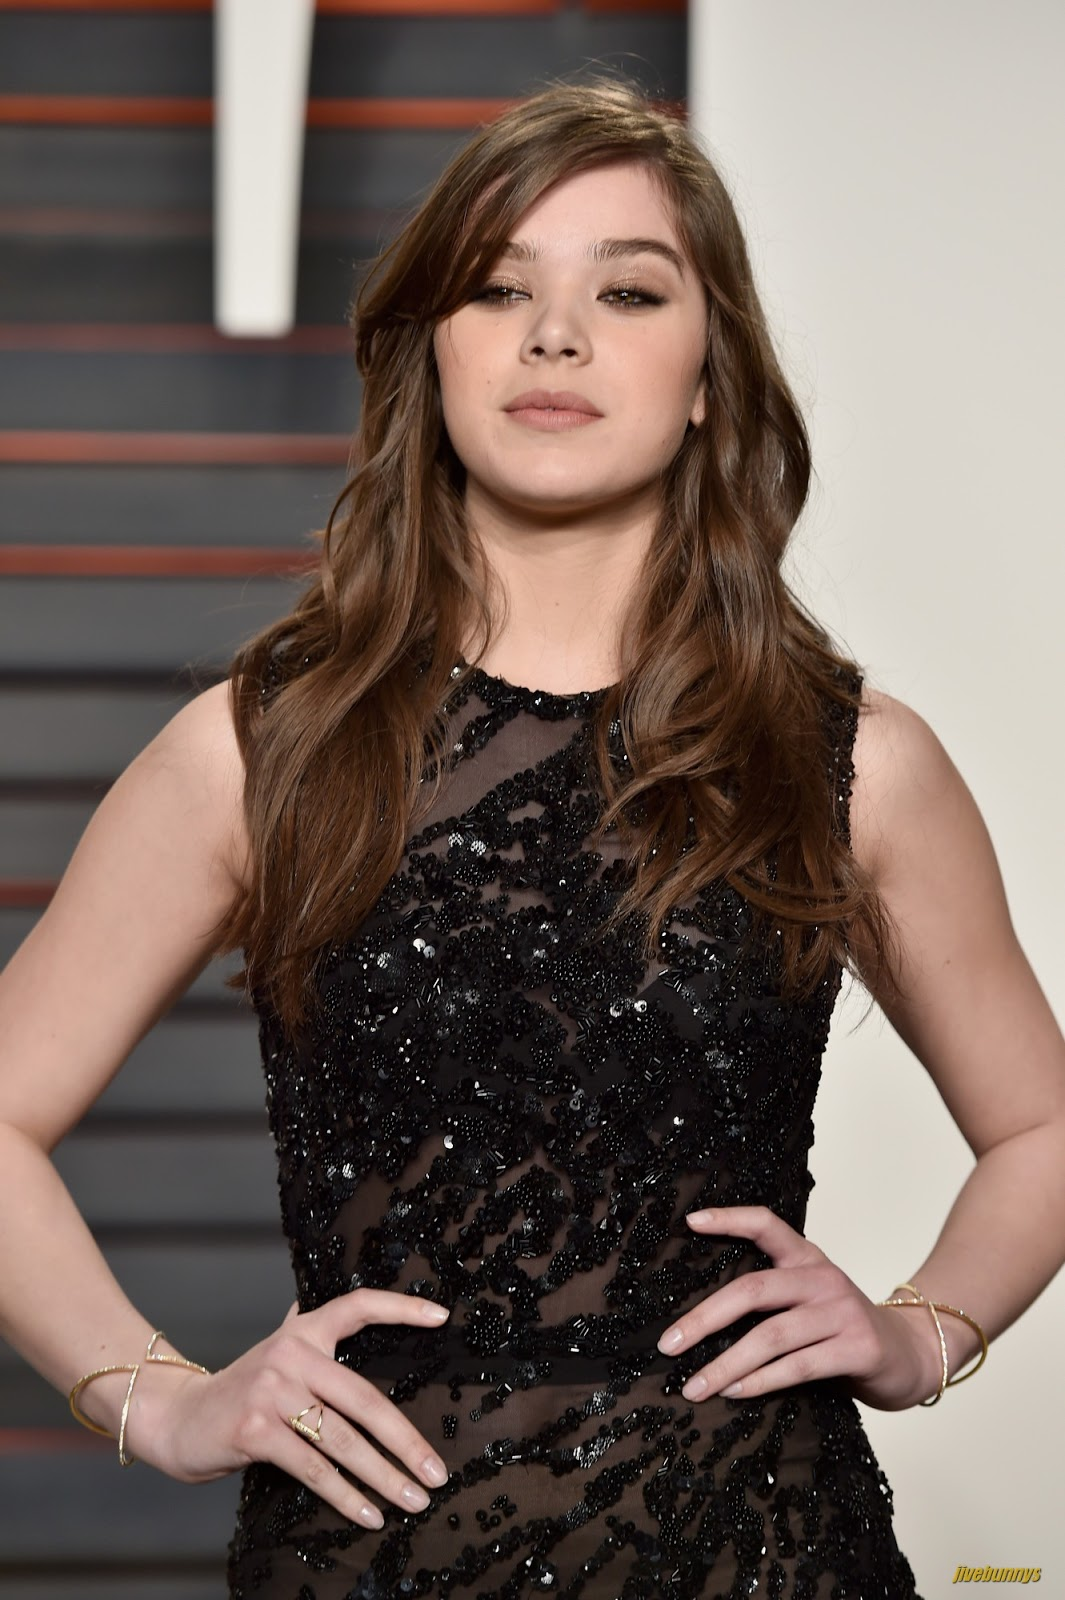 Jivebunnys Female Celebrity Picture Gallery: Hailee ...